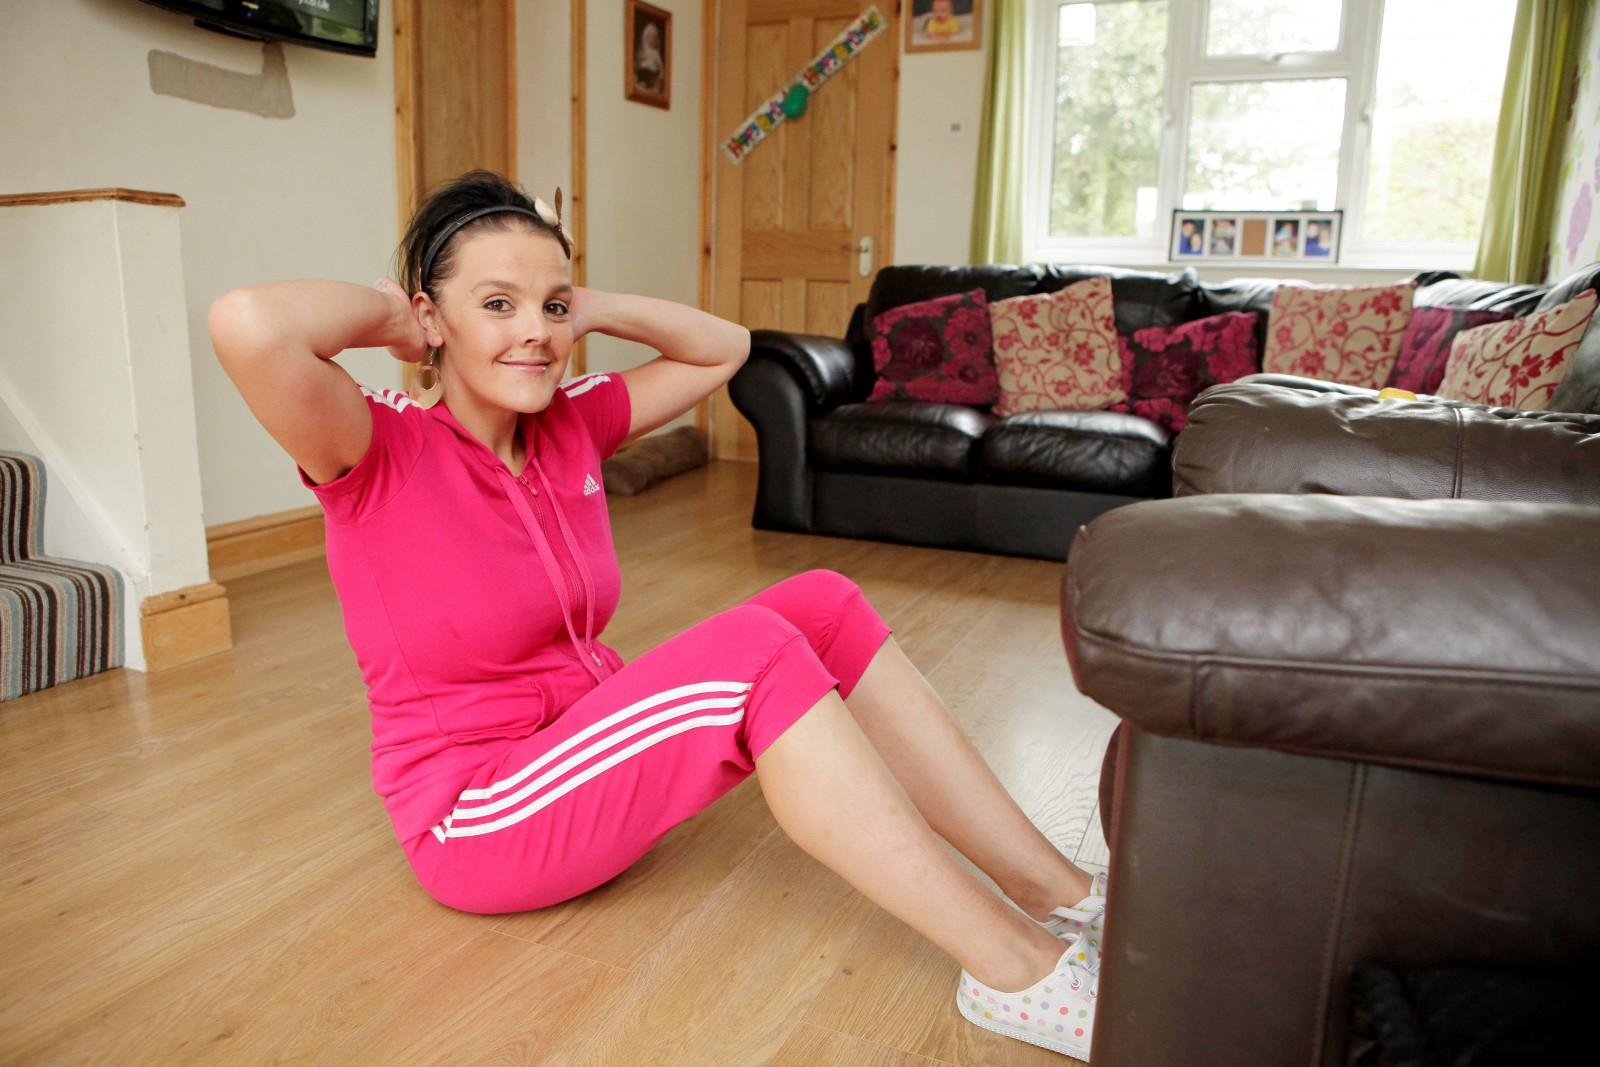 The stay-at-home mummy diet! Woman turns house into bootcamp and loses 10 stone